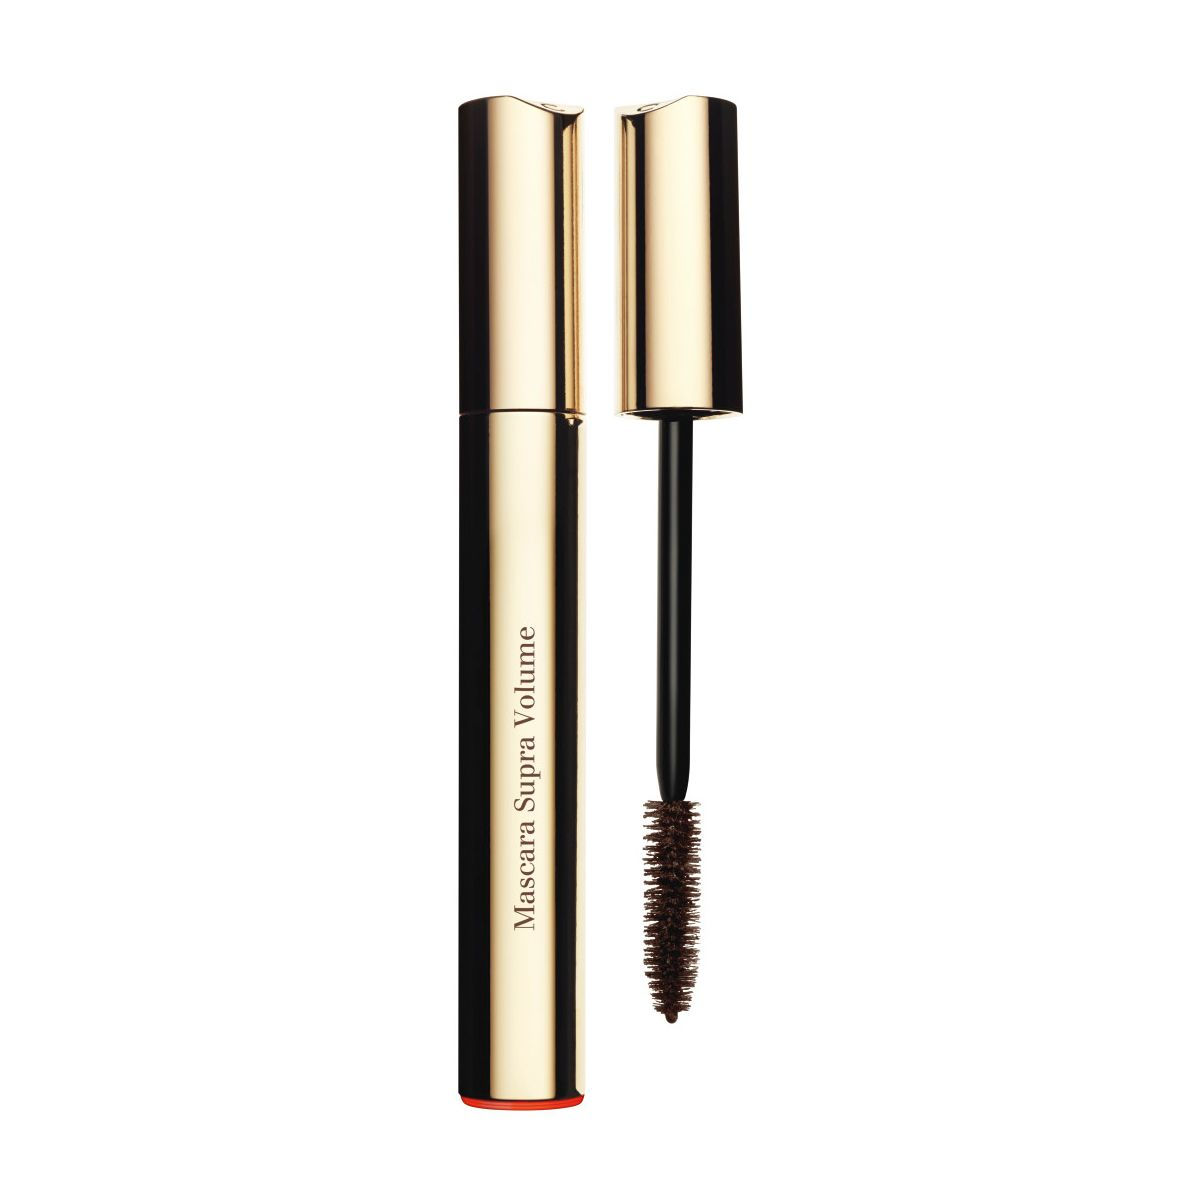 Clarins Mascara Supra Volume Brown